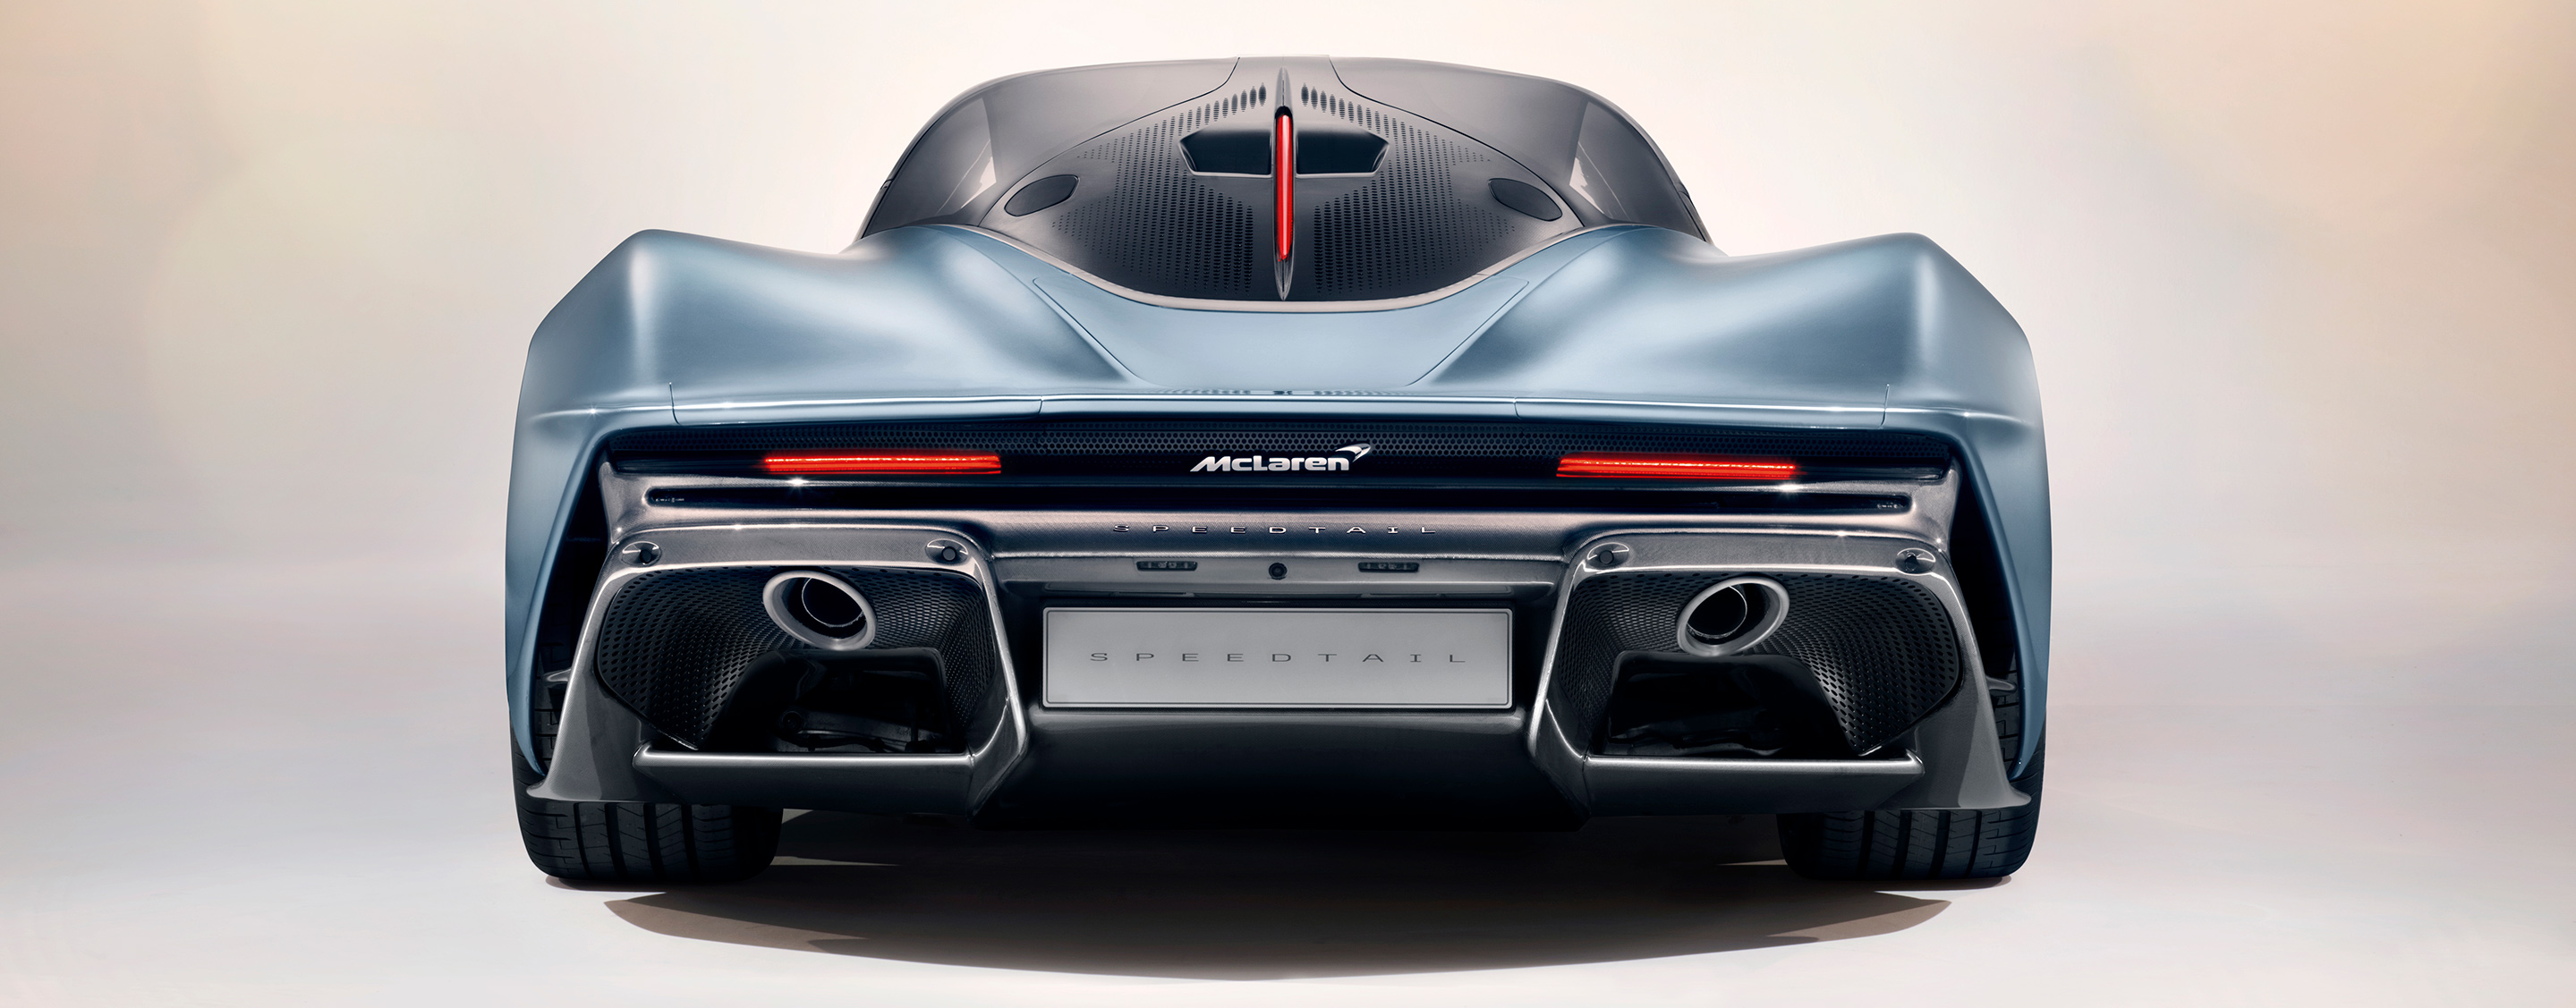 mclaren speedtail is mclaren's fastest road car ever – wheels.ca